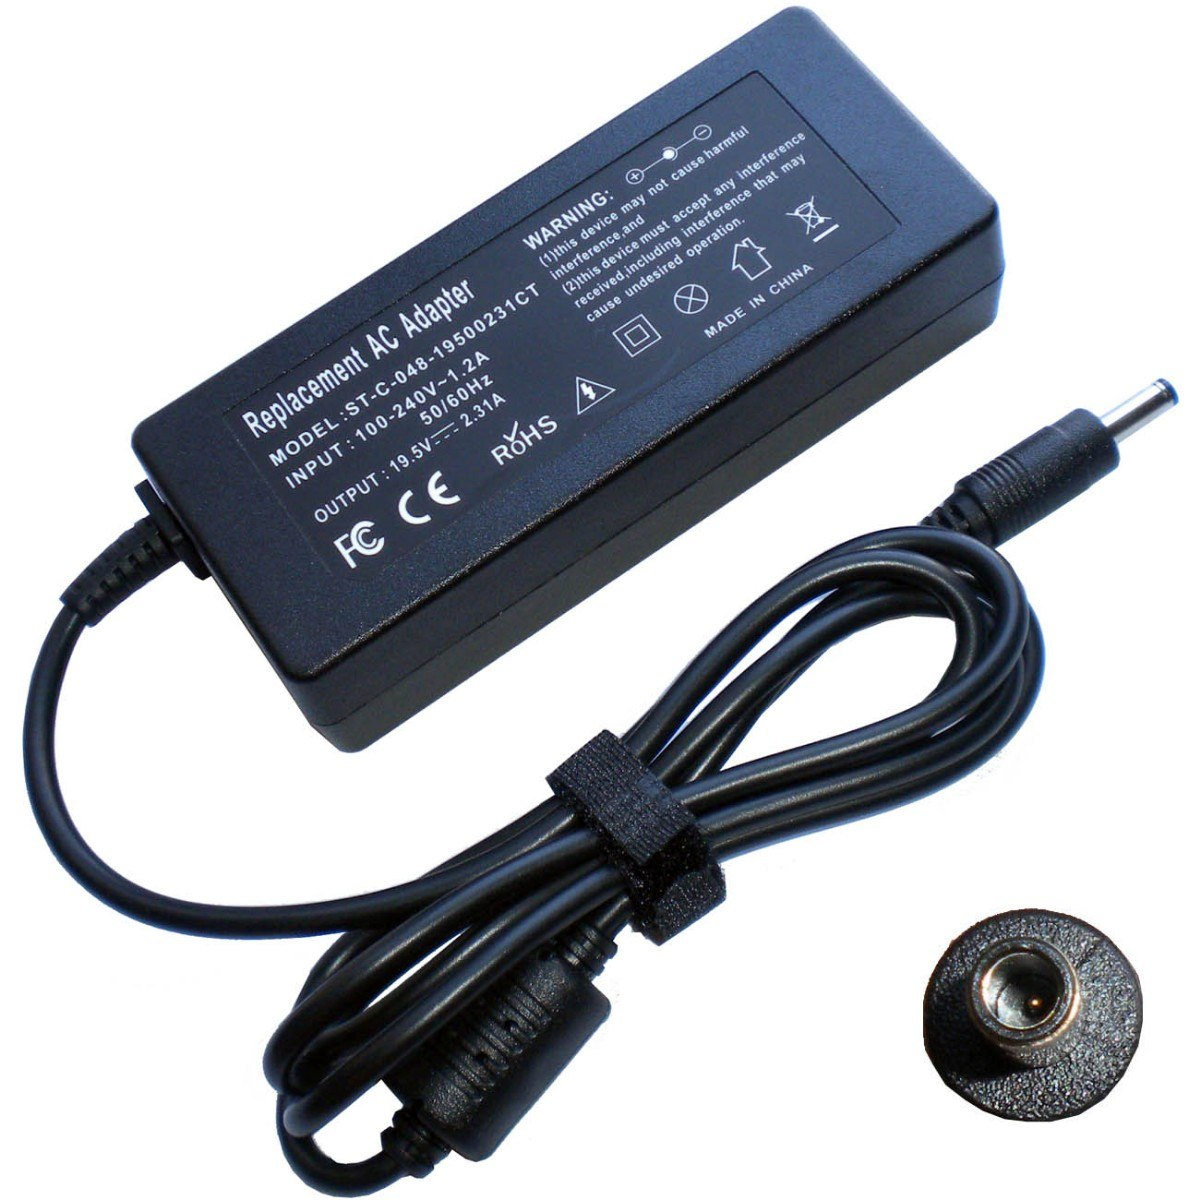 Laptop Adapter best price in Karachi Adapter Dell 19v5-4a62 | 90w (4.5*3.0) xps pin